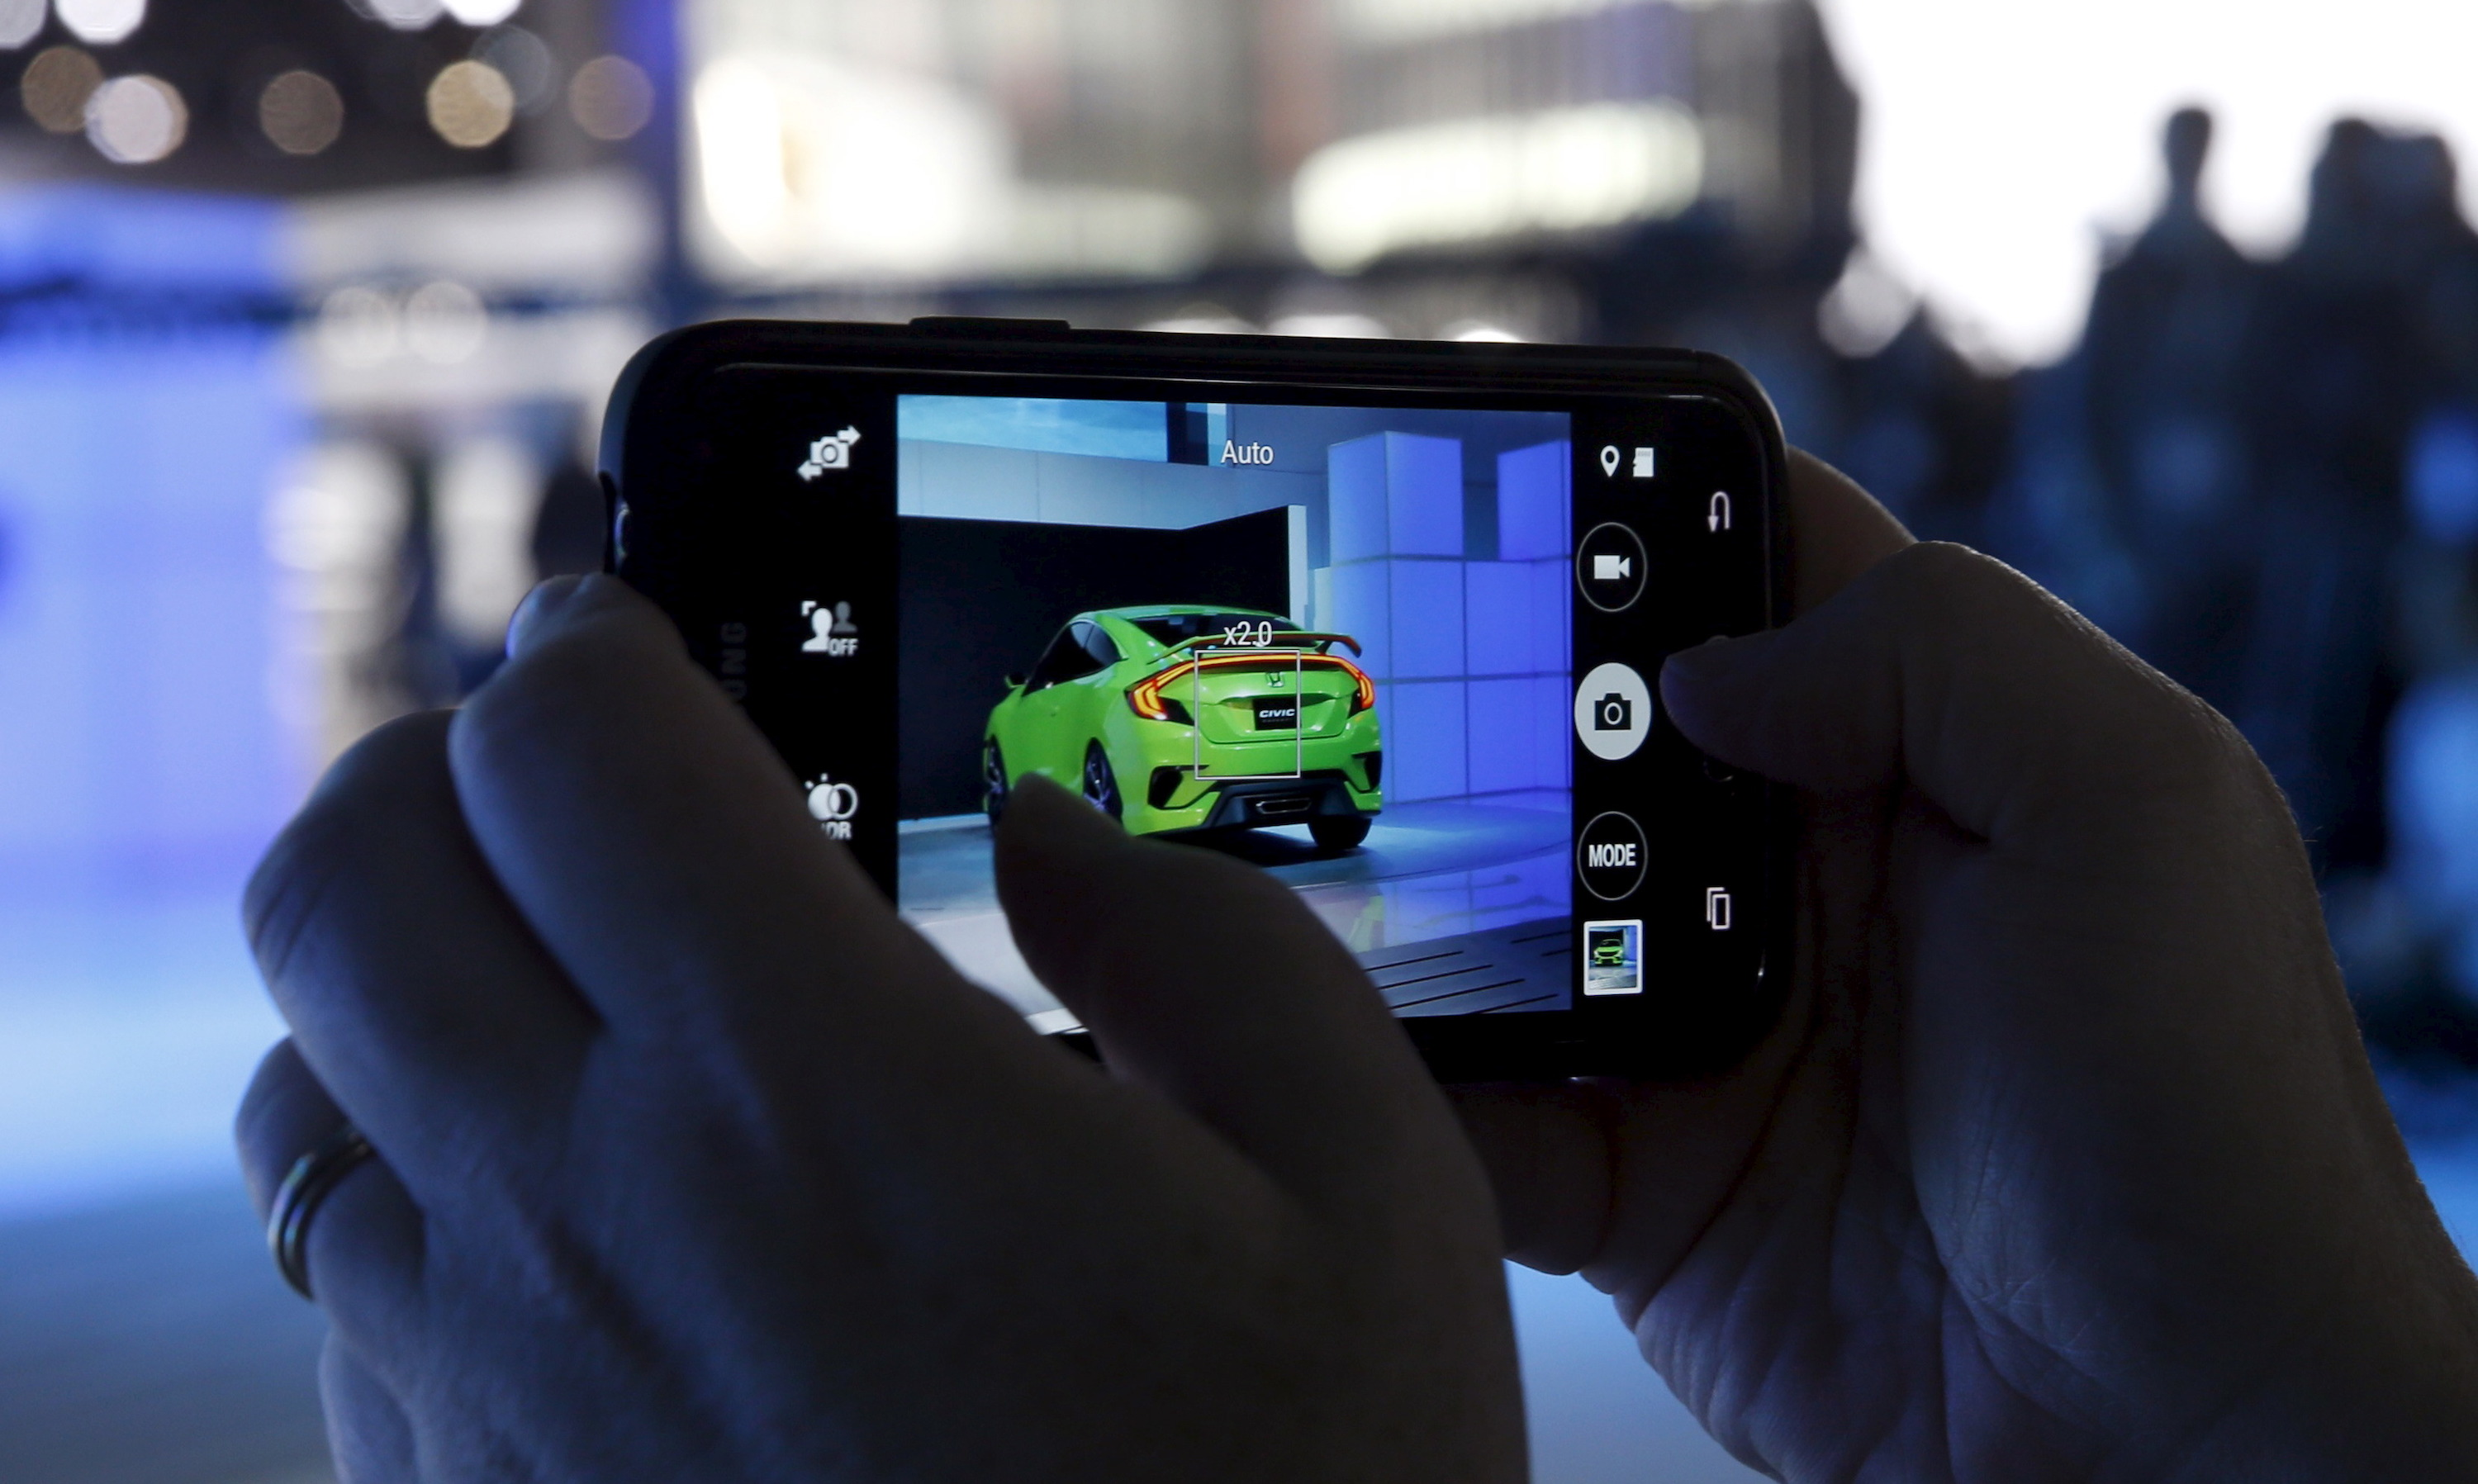 A man records with his mobile phone as Honda unveils a Civic concept car at the New York International Auto Show in New York April 1, 2015. REUTERS/Shannon Stapleton - RTR4VSLF